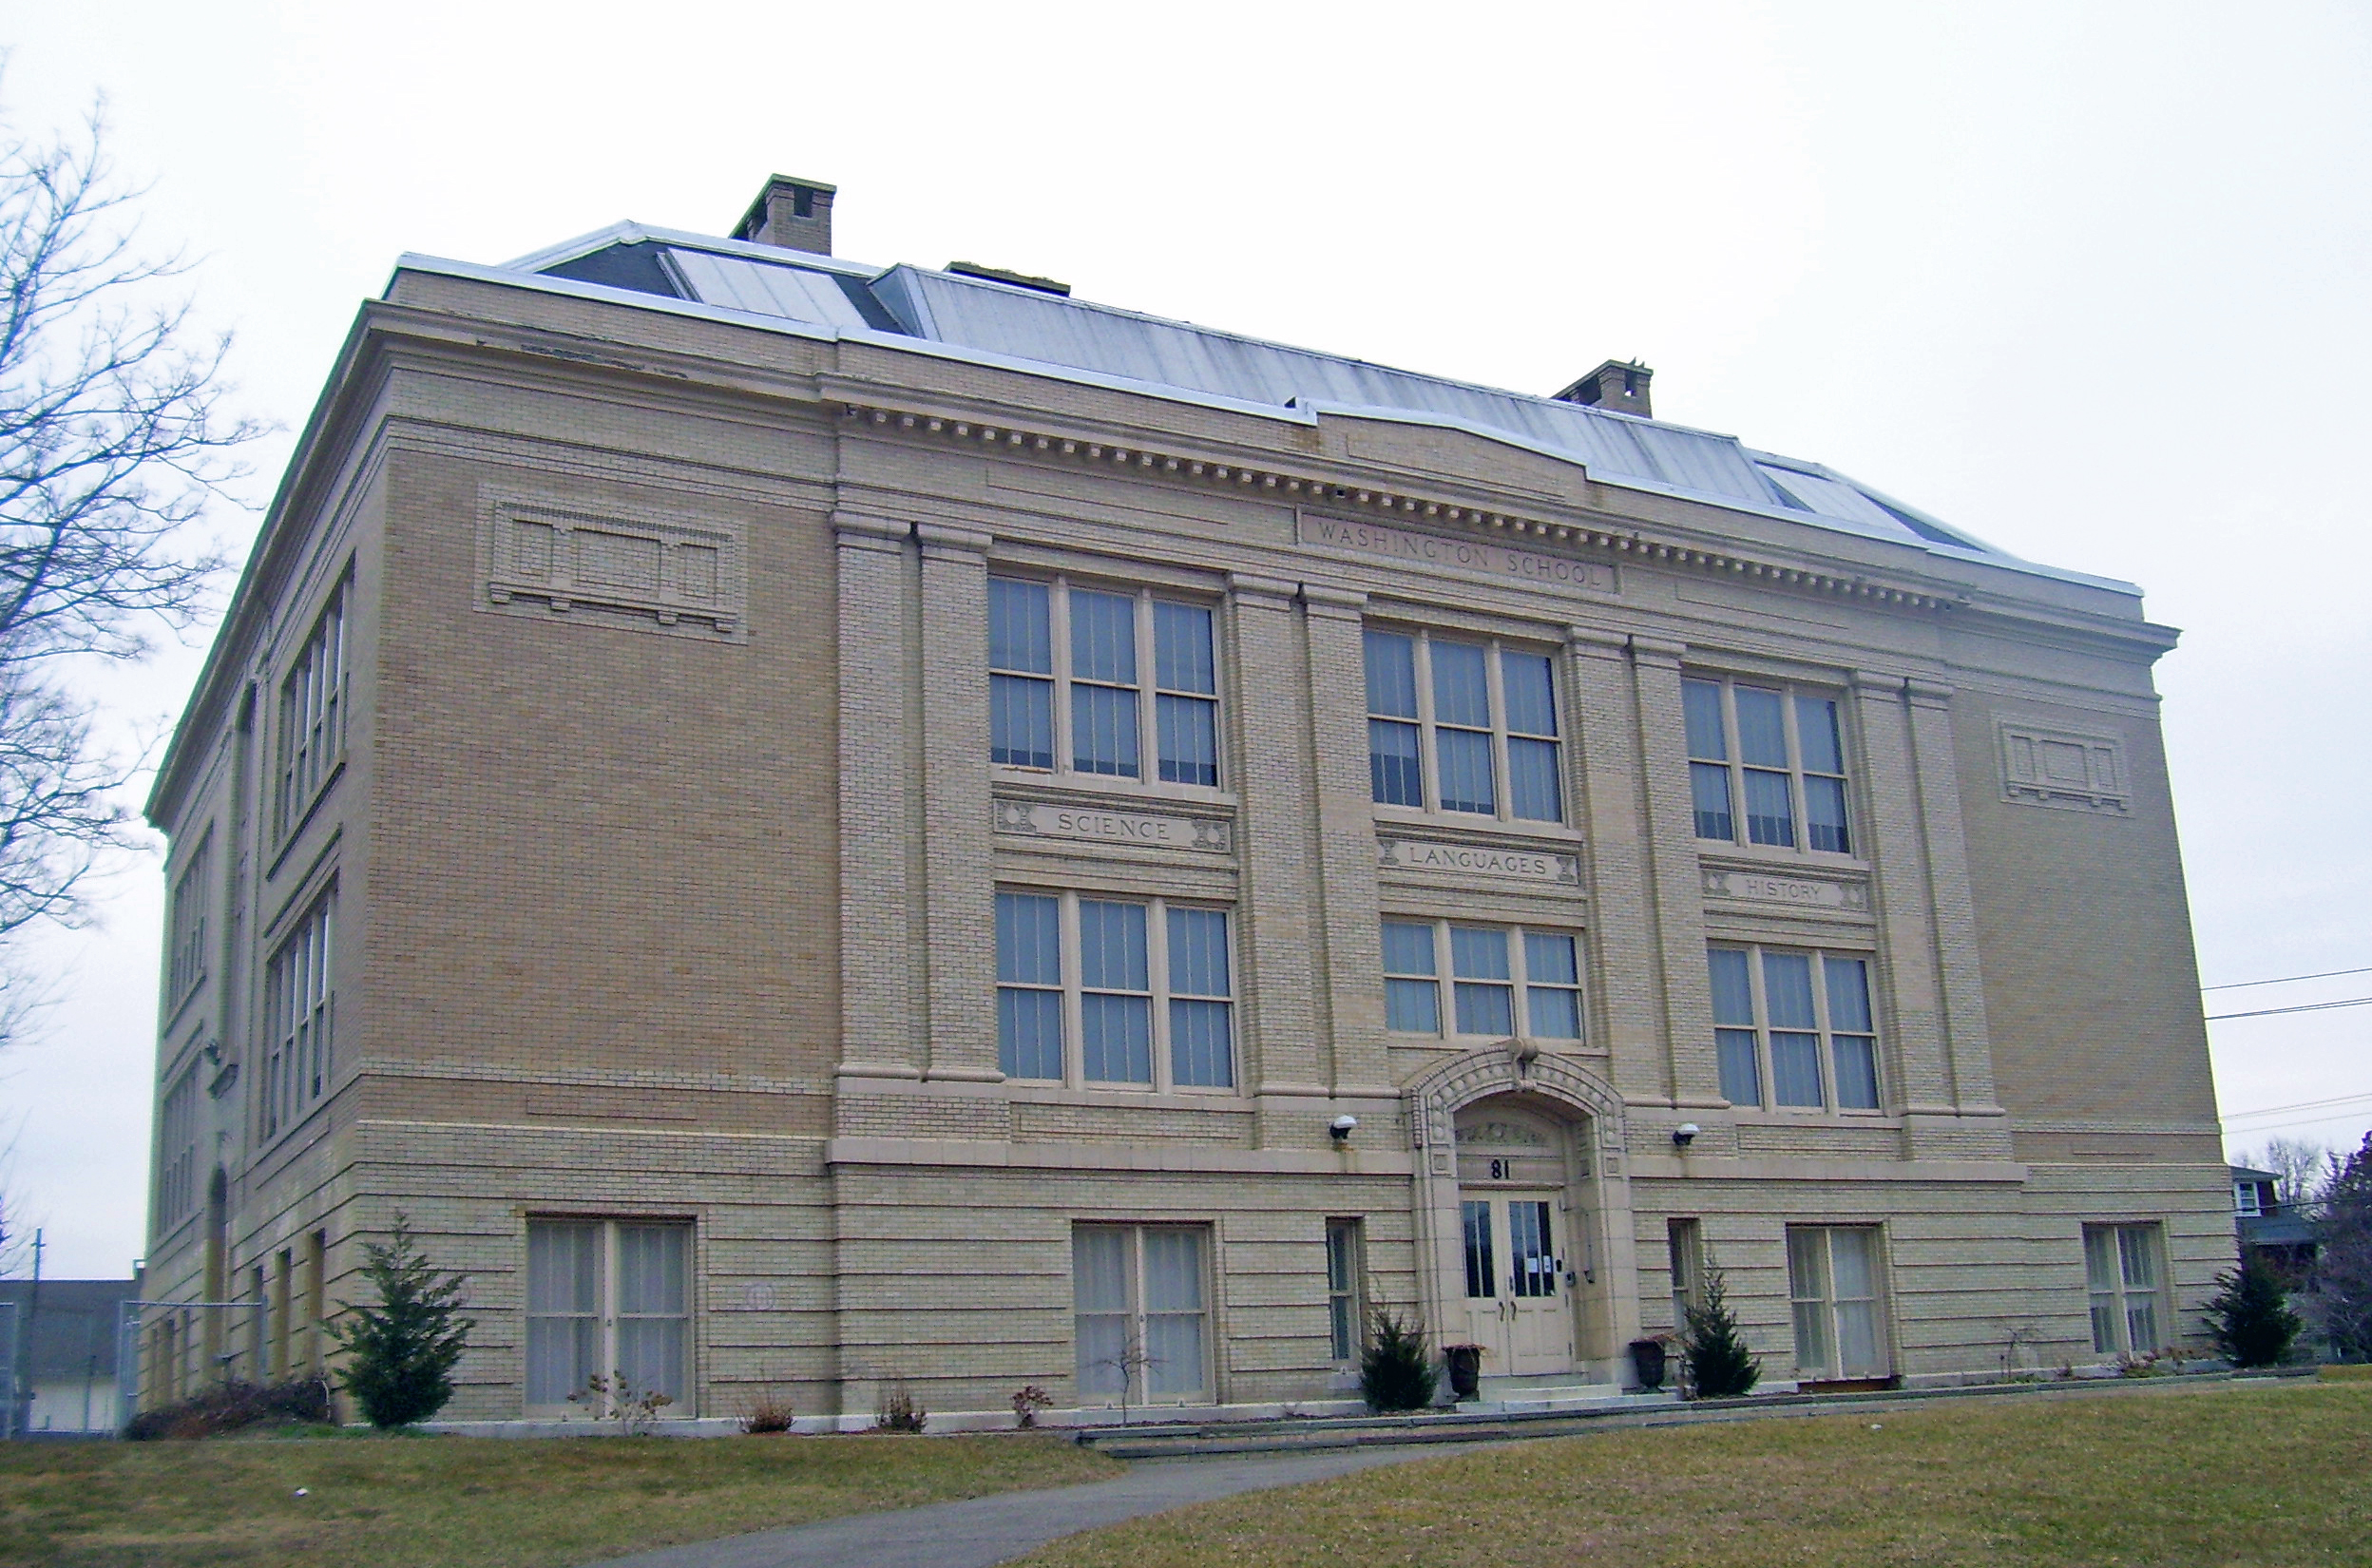 File:Washington School, Ossining, NY